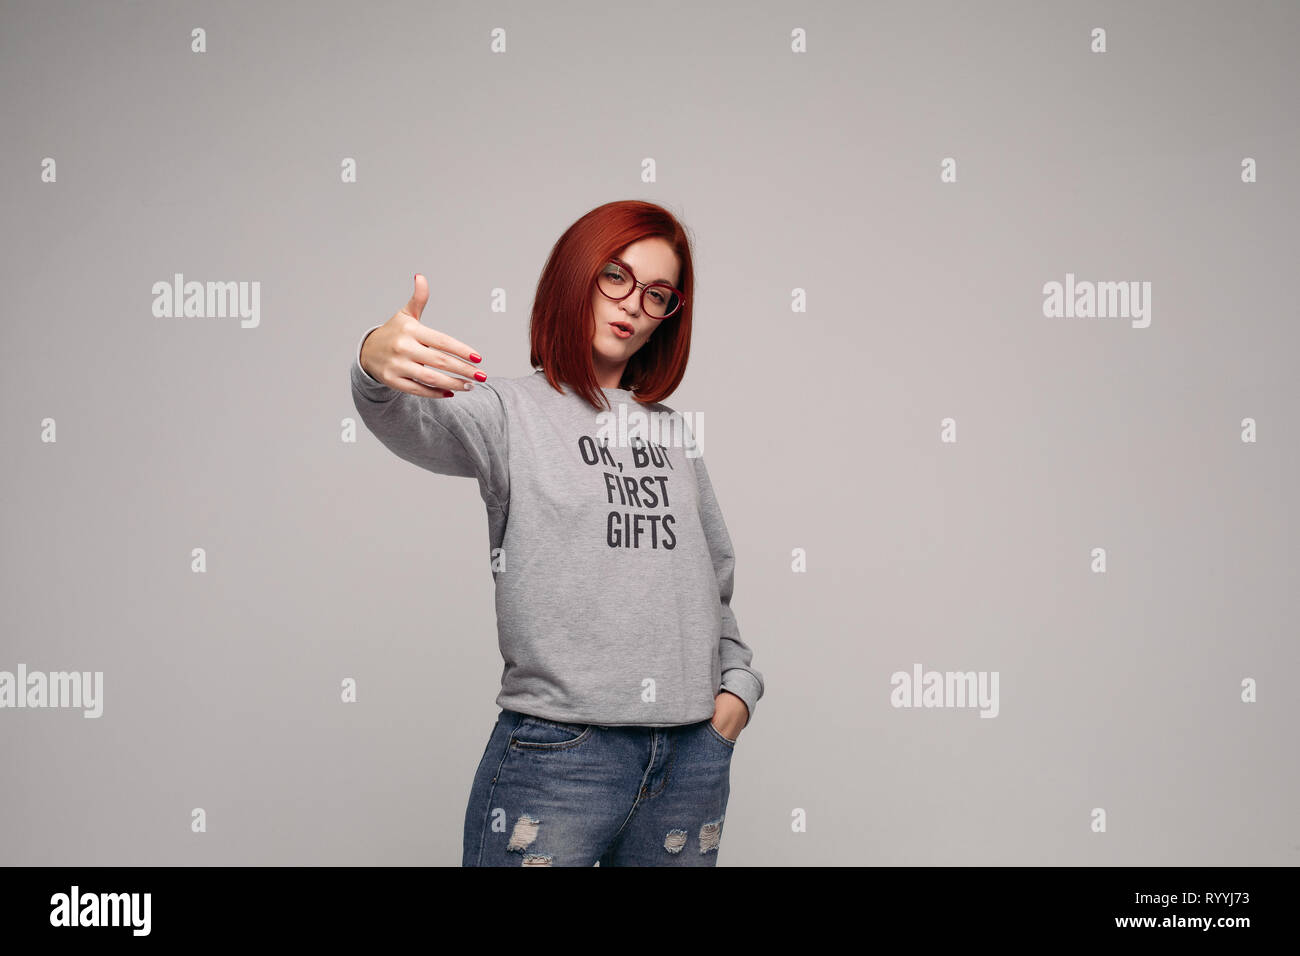 Swag and confident red haired girl in jeans and sweatshirt